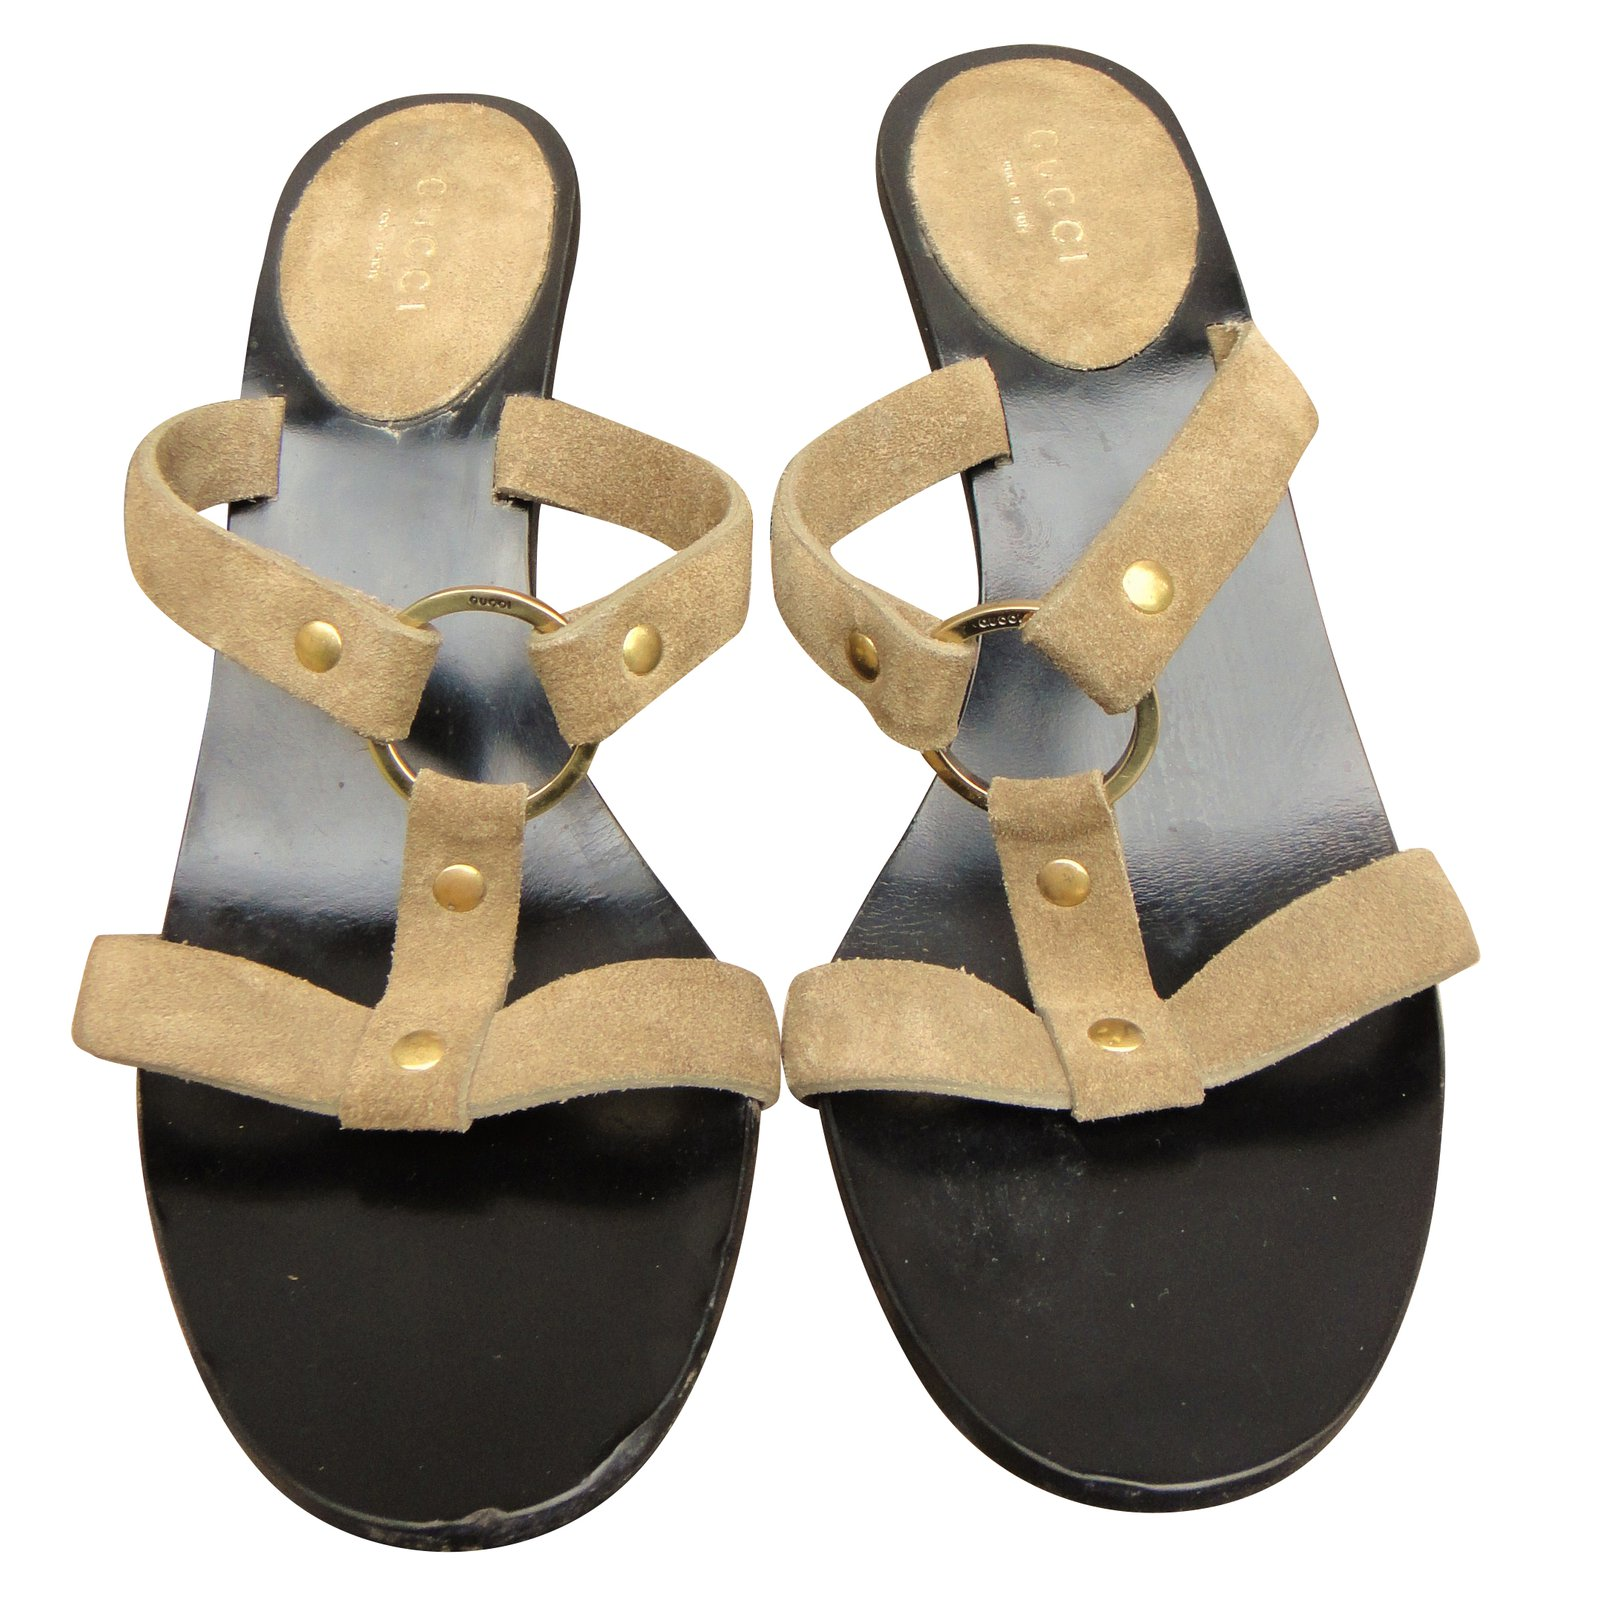 956117f67a79 Gucci Sandals Sandals Leather